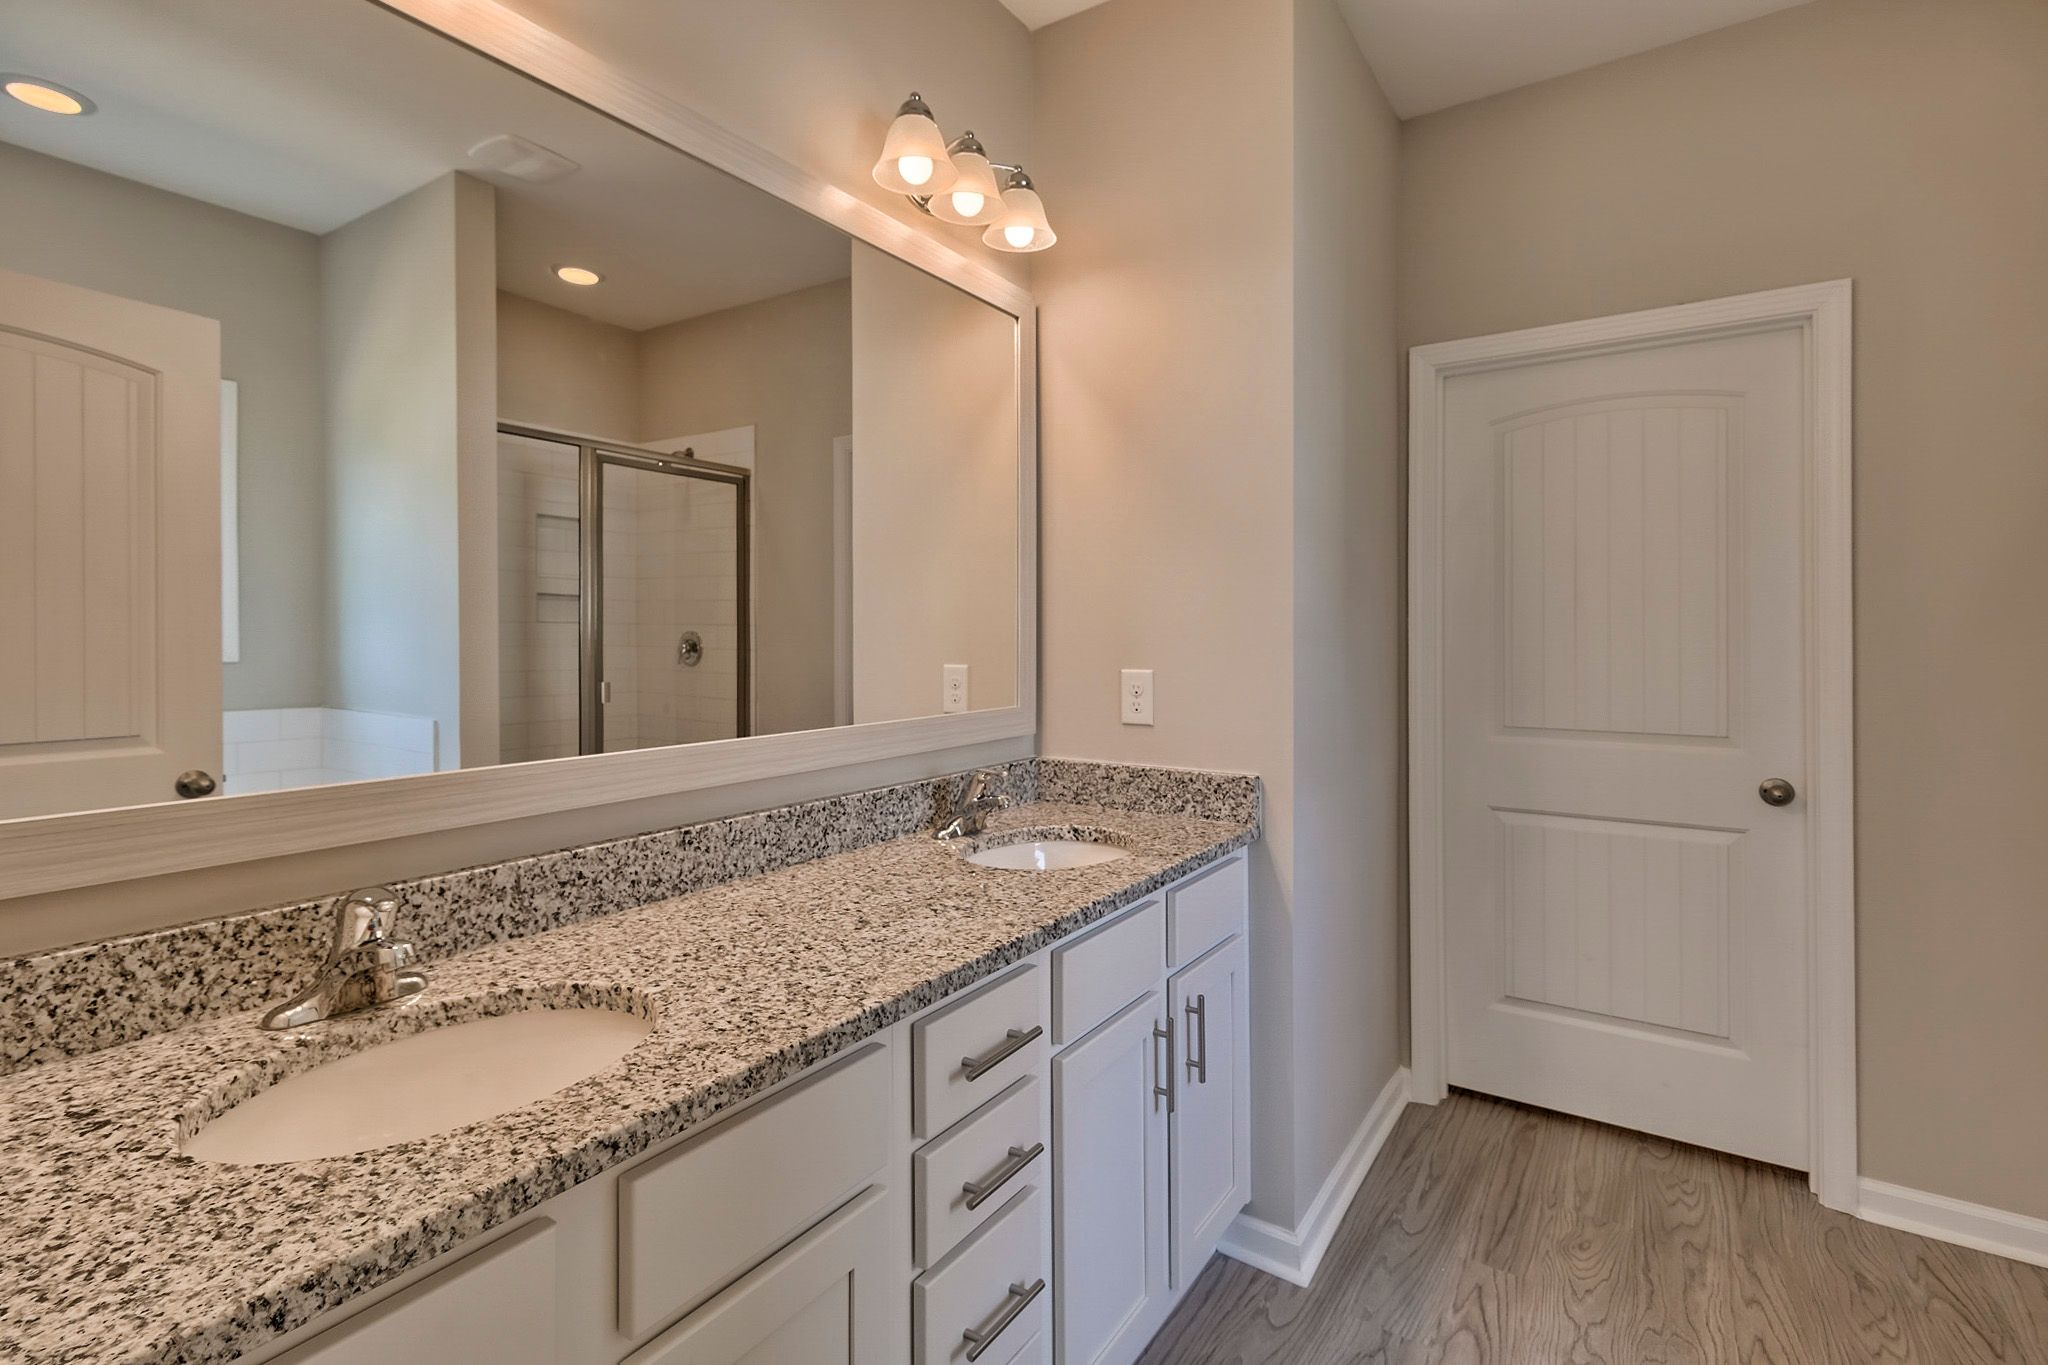 Bathroom featured in the Julie B By Great Southern Homes in Myrtle Beach, SC